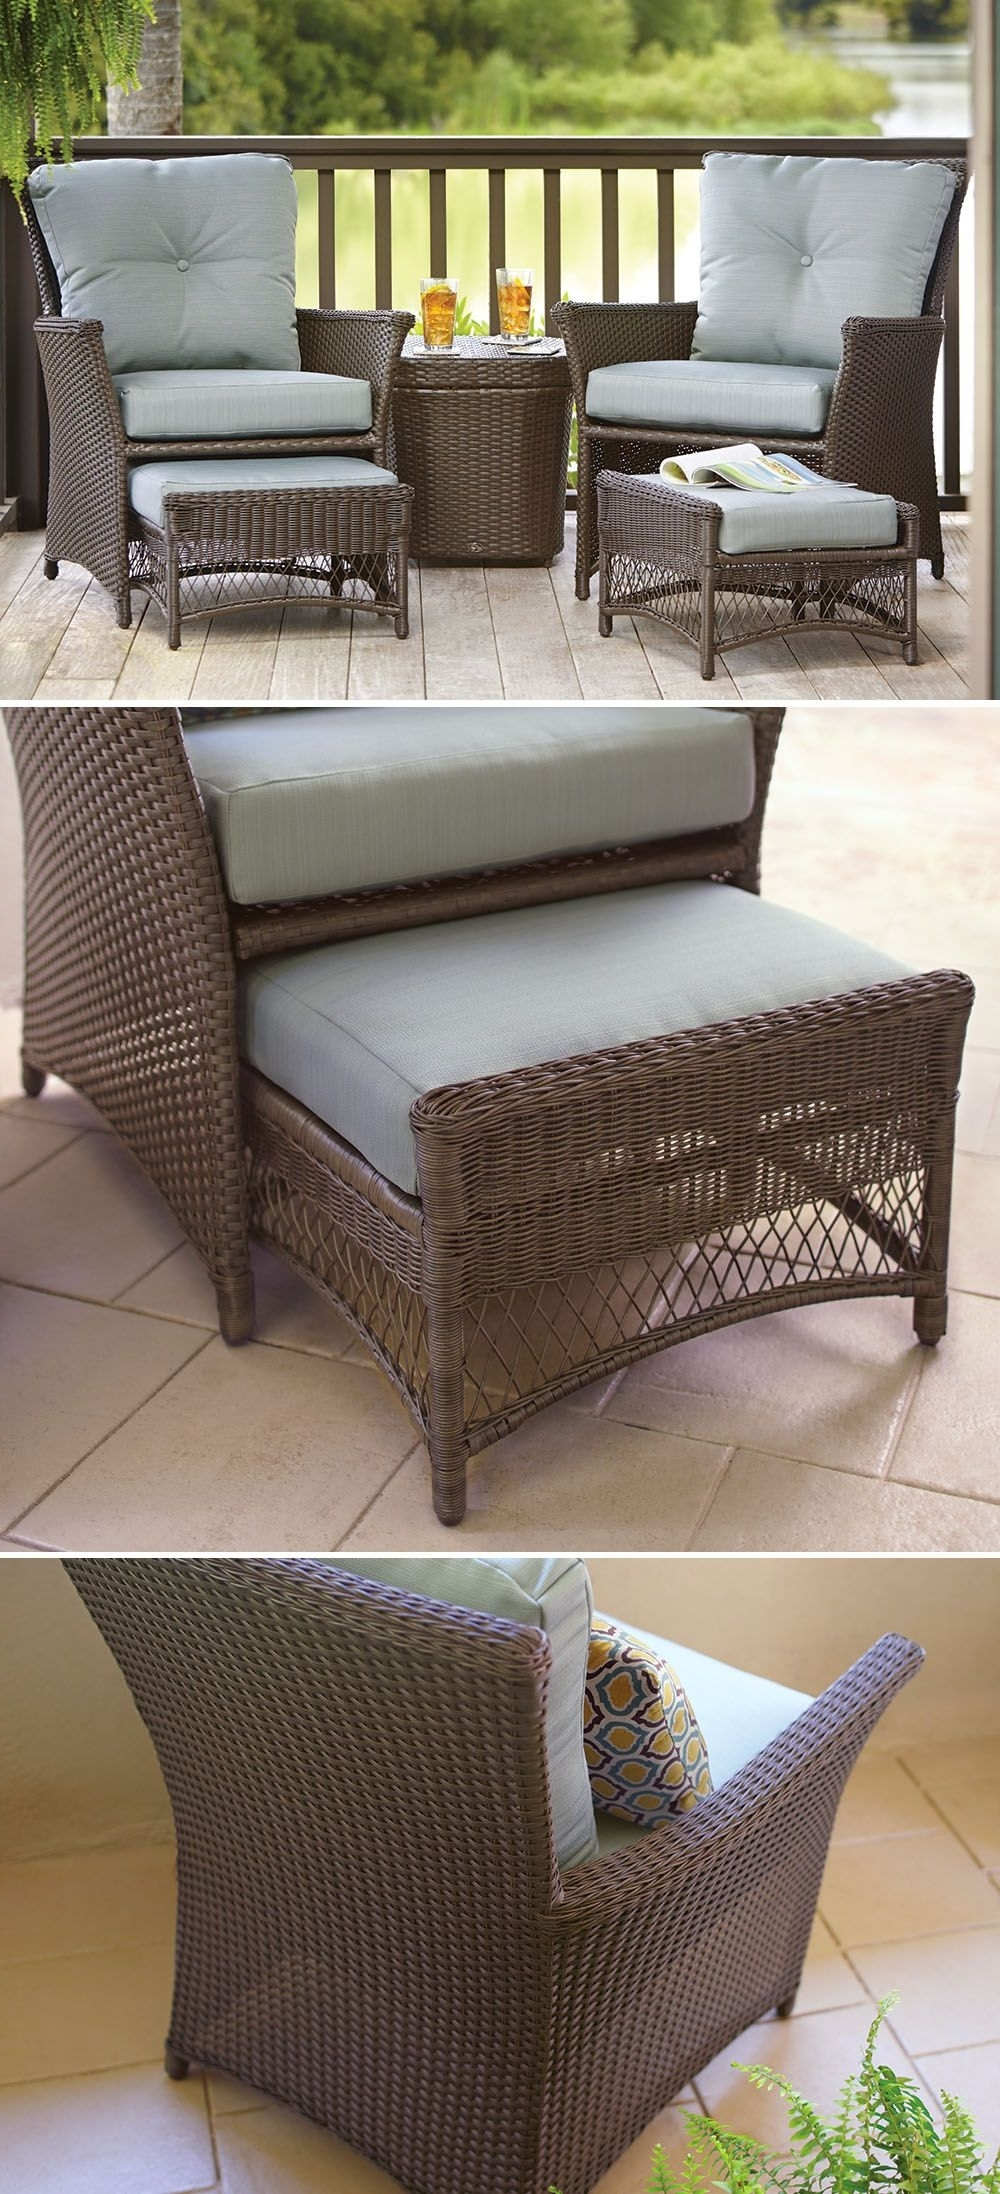 Recent This Affordable Patio Set Is Just The Right Size For Your Small In Patio Conversation Sets With Ottomans (View 10 of 20)